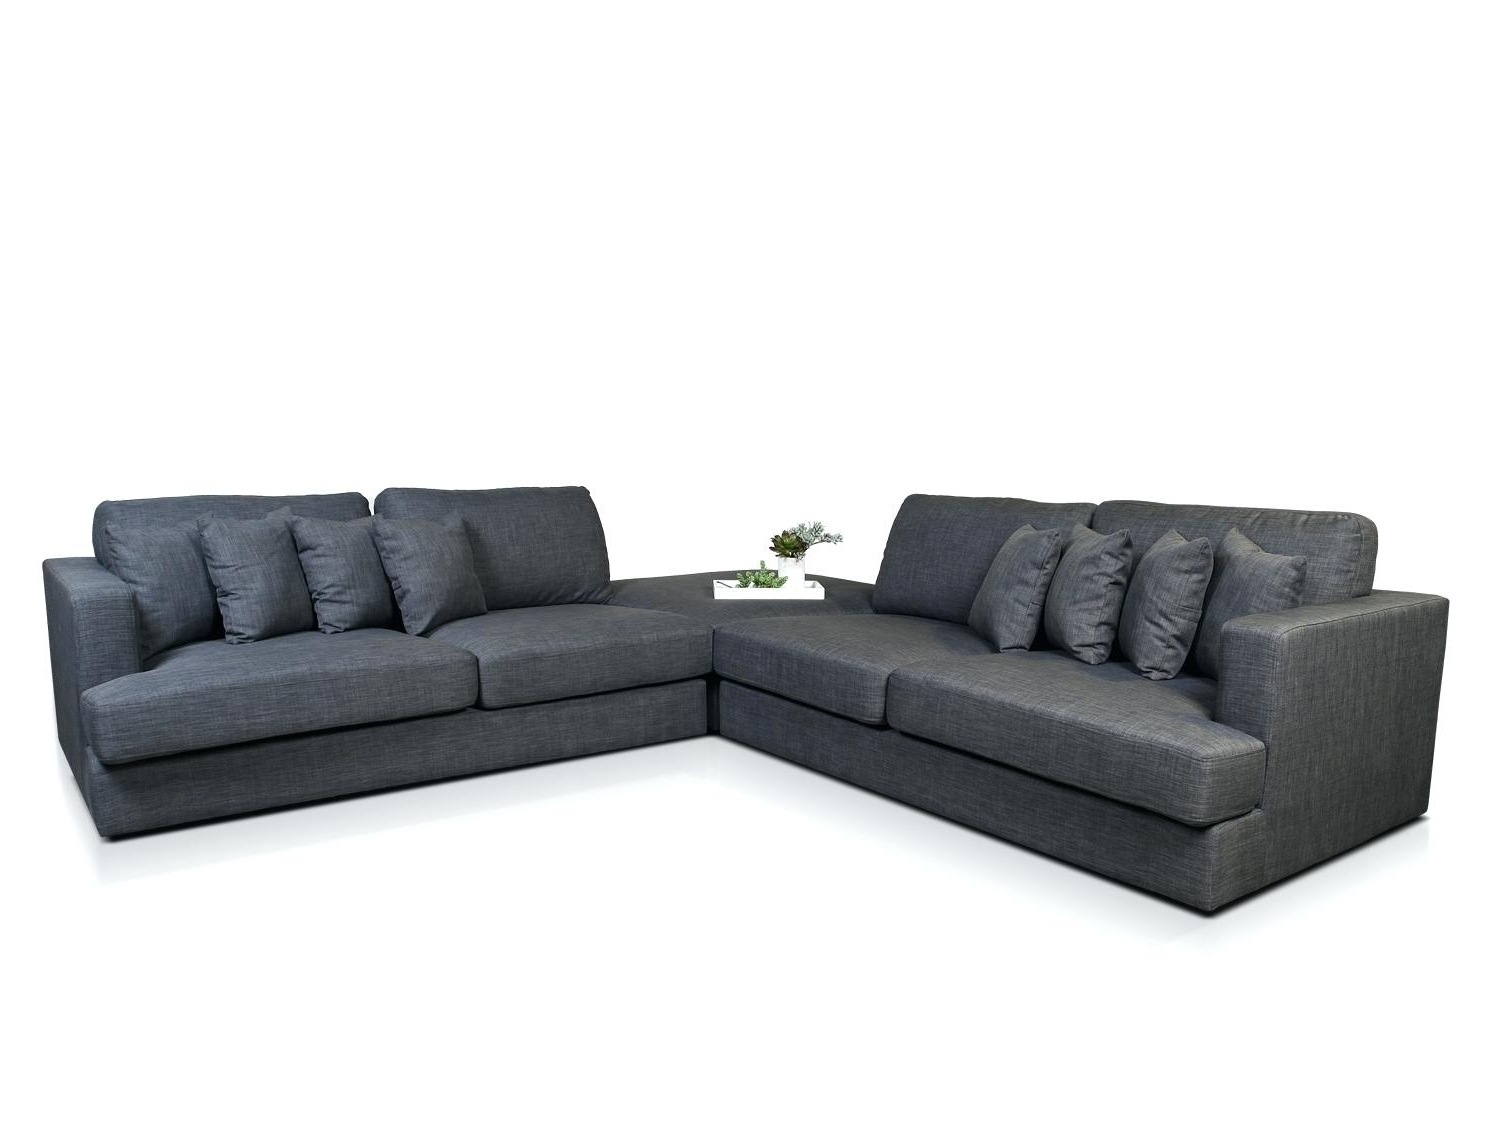 Small Modular Sofas Intended For Famous Modular Sofas Bedroom Furniture For Small Spaces Uk Used Sofa Sale (View 8 of 20)